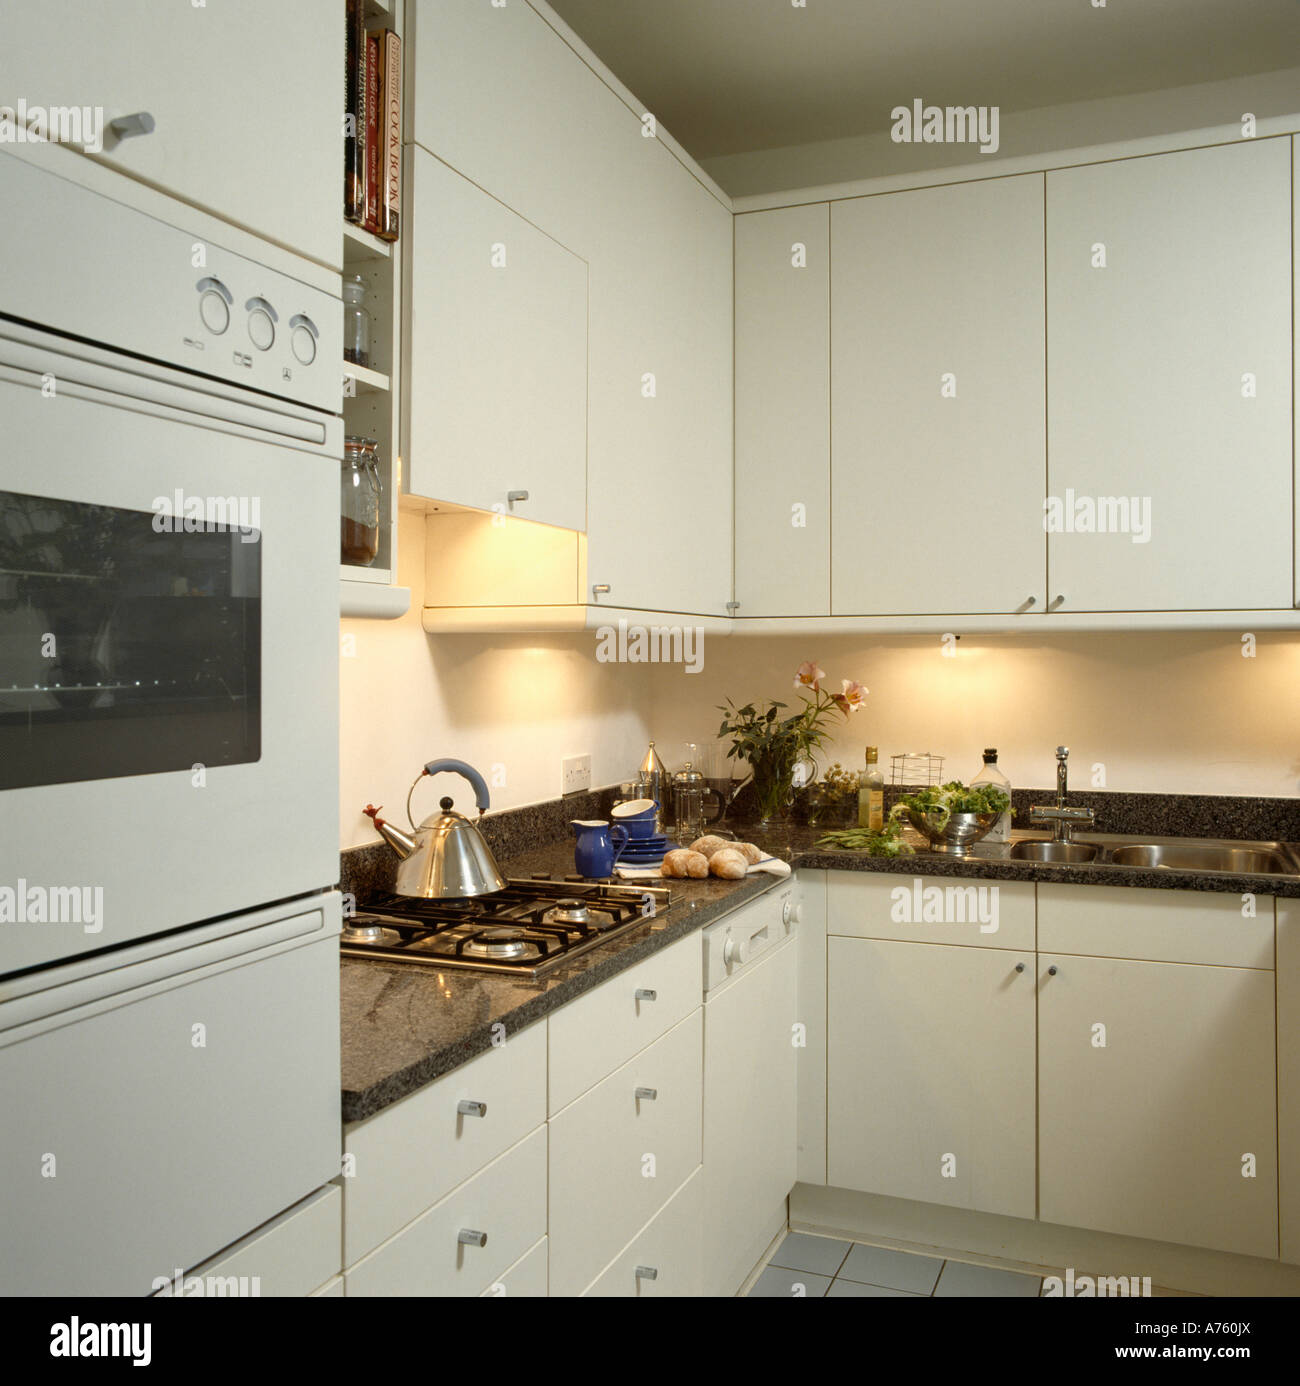 Küche Petrol Wand Black Worktops Stockfotos And Black Worktops Bilder Alamy